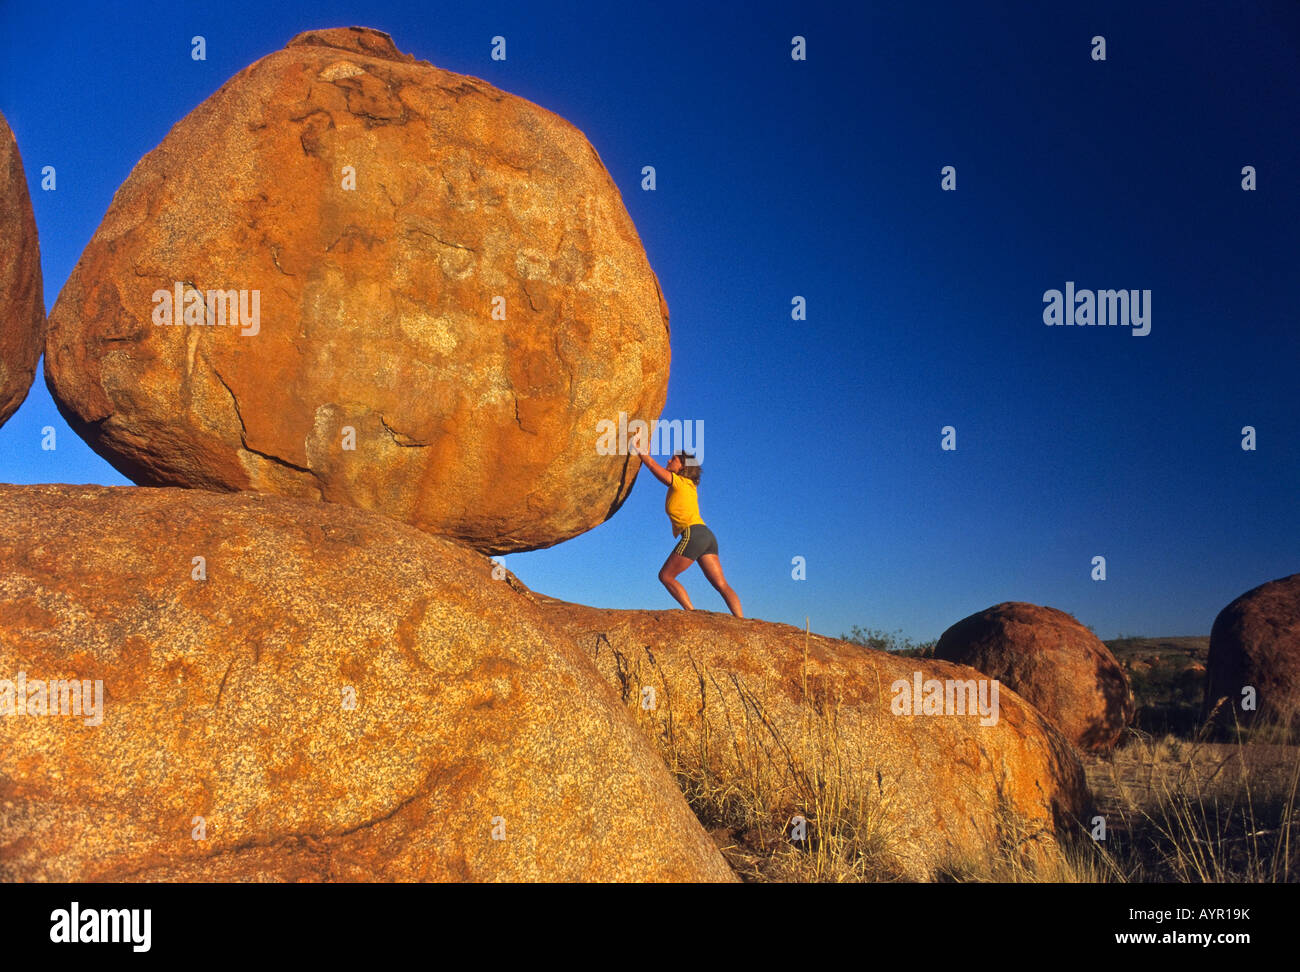 Woman propping up large round rock, Devil's Marbles, Northern Territory, Australia - Stock Image